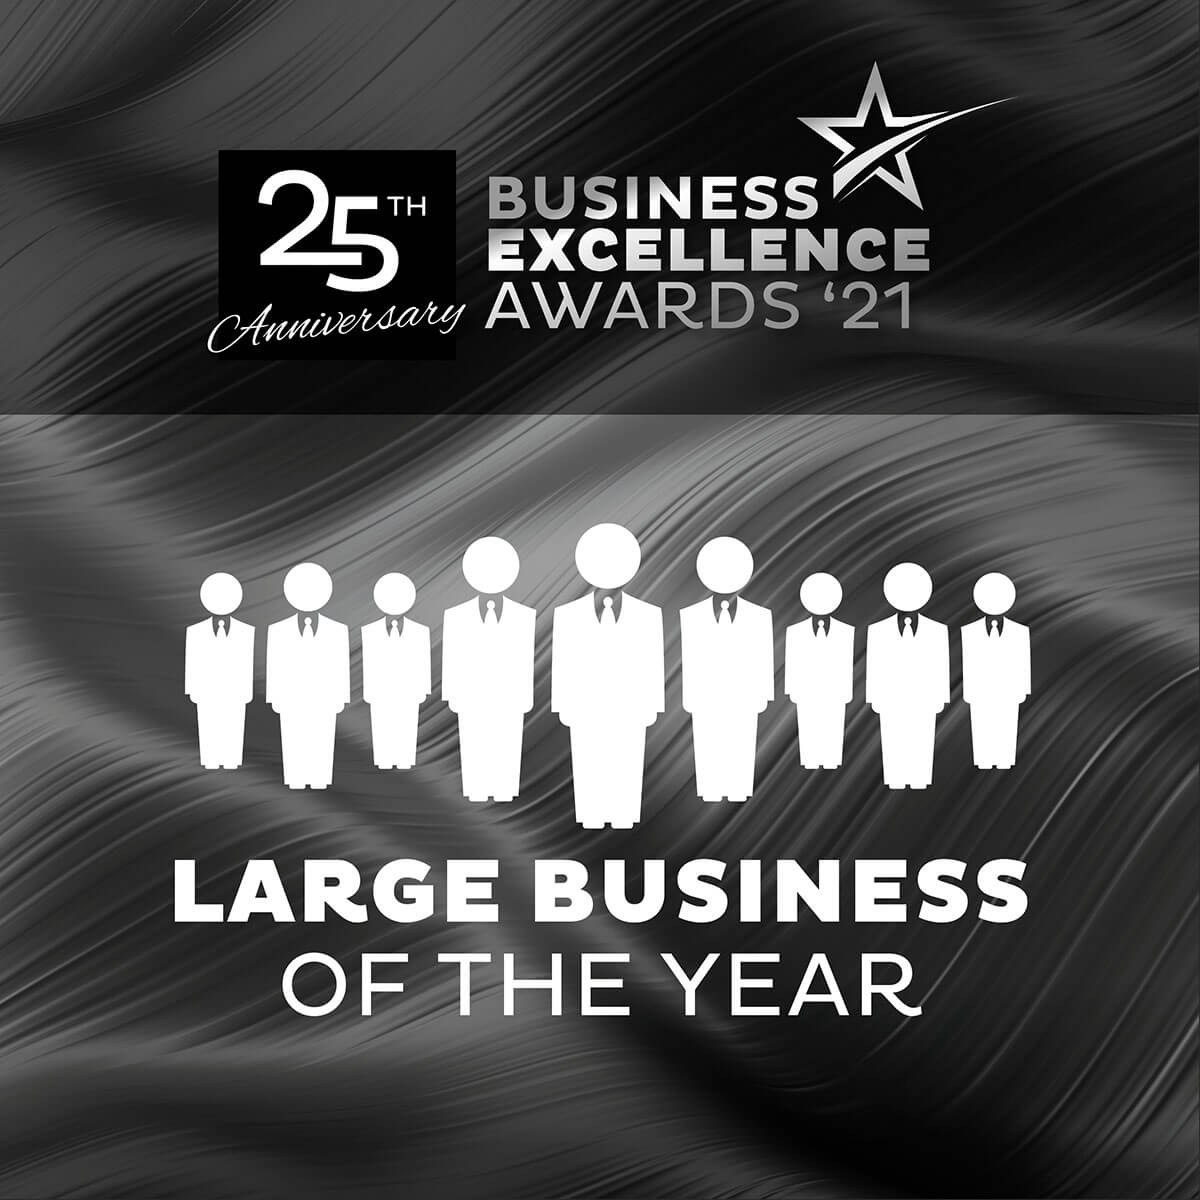 large business of the year banner